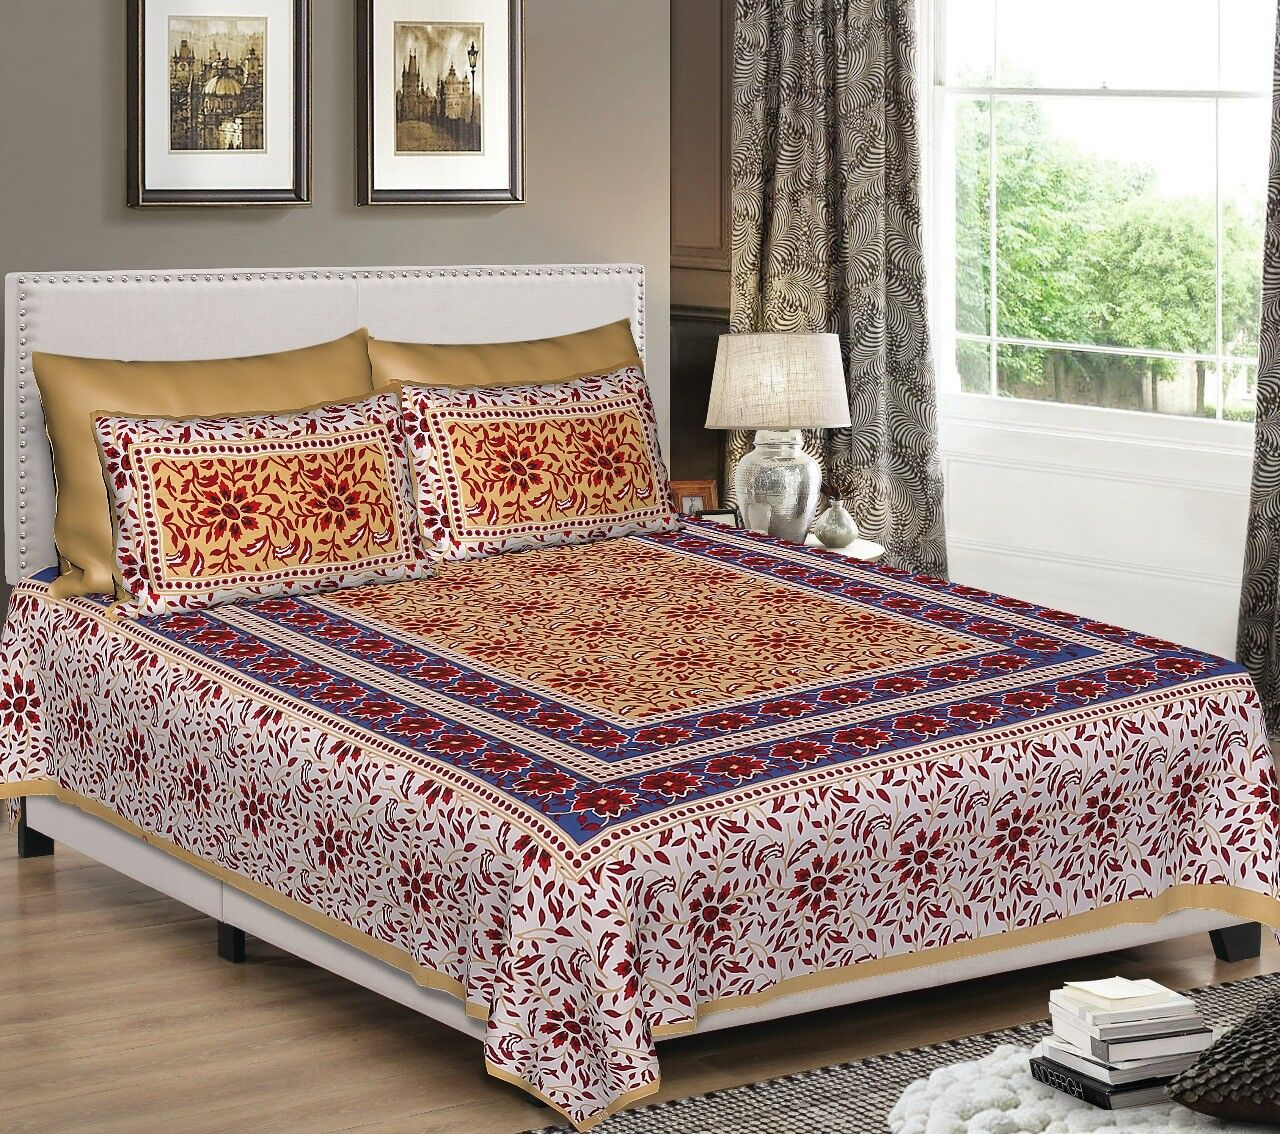 Indian Floral Print Soft 100% Pure Cotton Bed Sheet With Two Pillow Covers Set